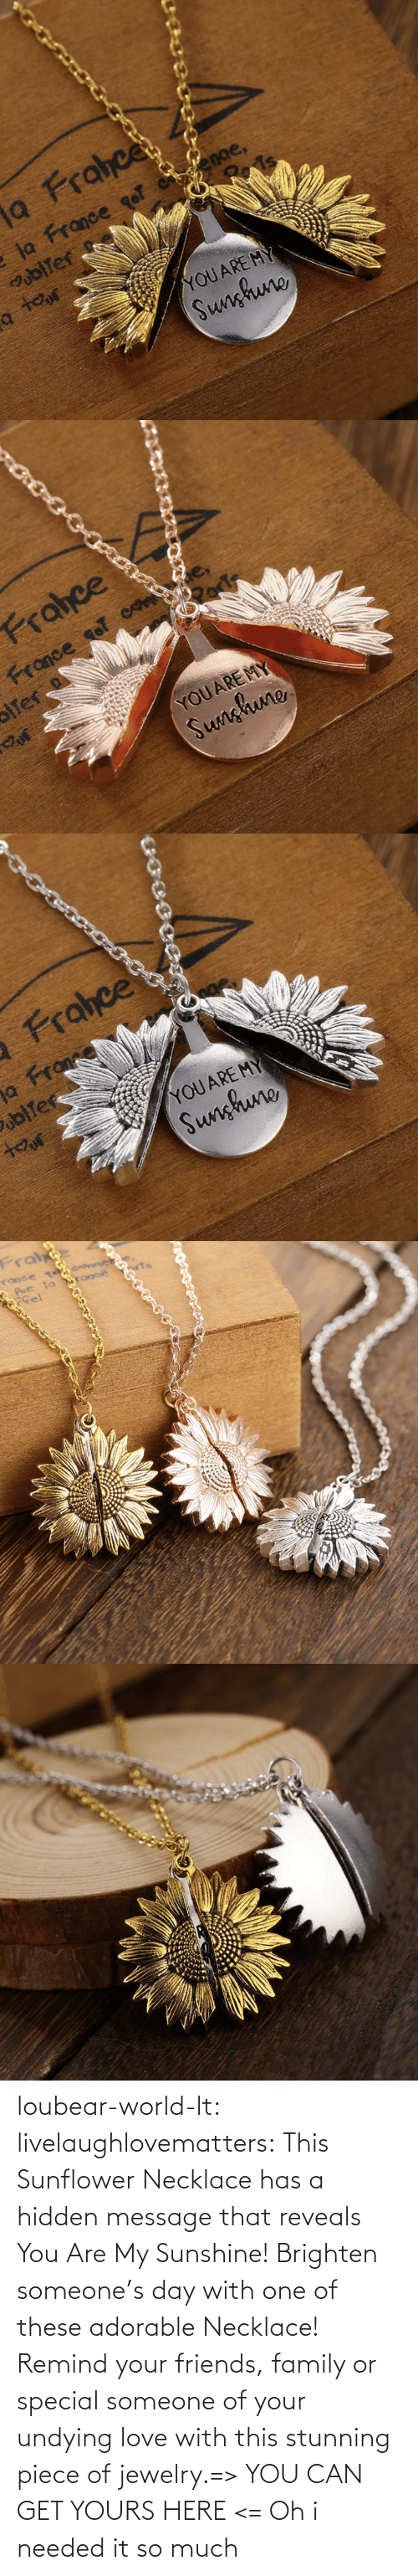 remind: loubear-world-lt:  livelaughlovematters:  This Sunflower Necklace has a hidden message that reveals You Are My Sunshine! Brighten someone's day with one of these adorable Necklace! Remind your friends, family or special someone of your undying love with this stunning piece of jewelry.=> YOU CAN GET YOURS HERE <=   Oh i needed it so much